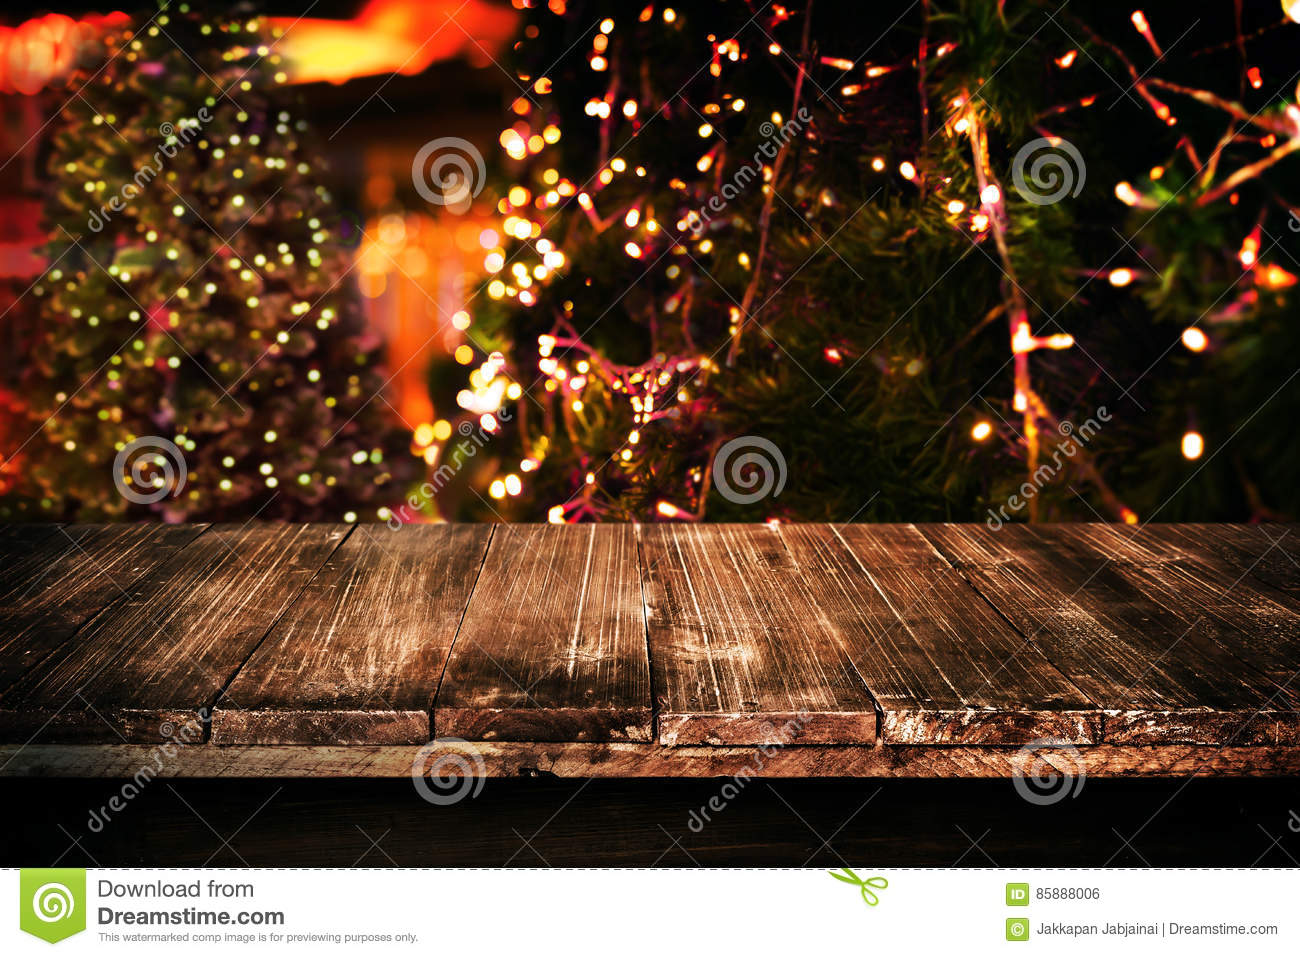 Christmas and New year background with empty dark wooden deck table over christmas tree and blurred light bokeh